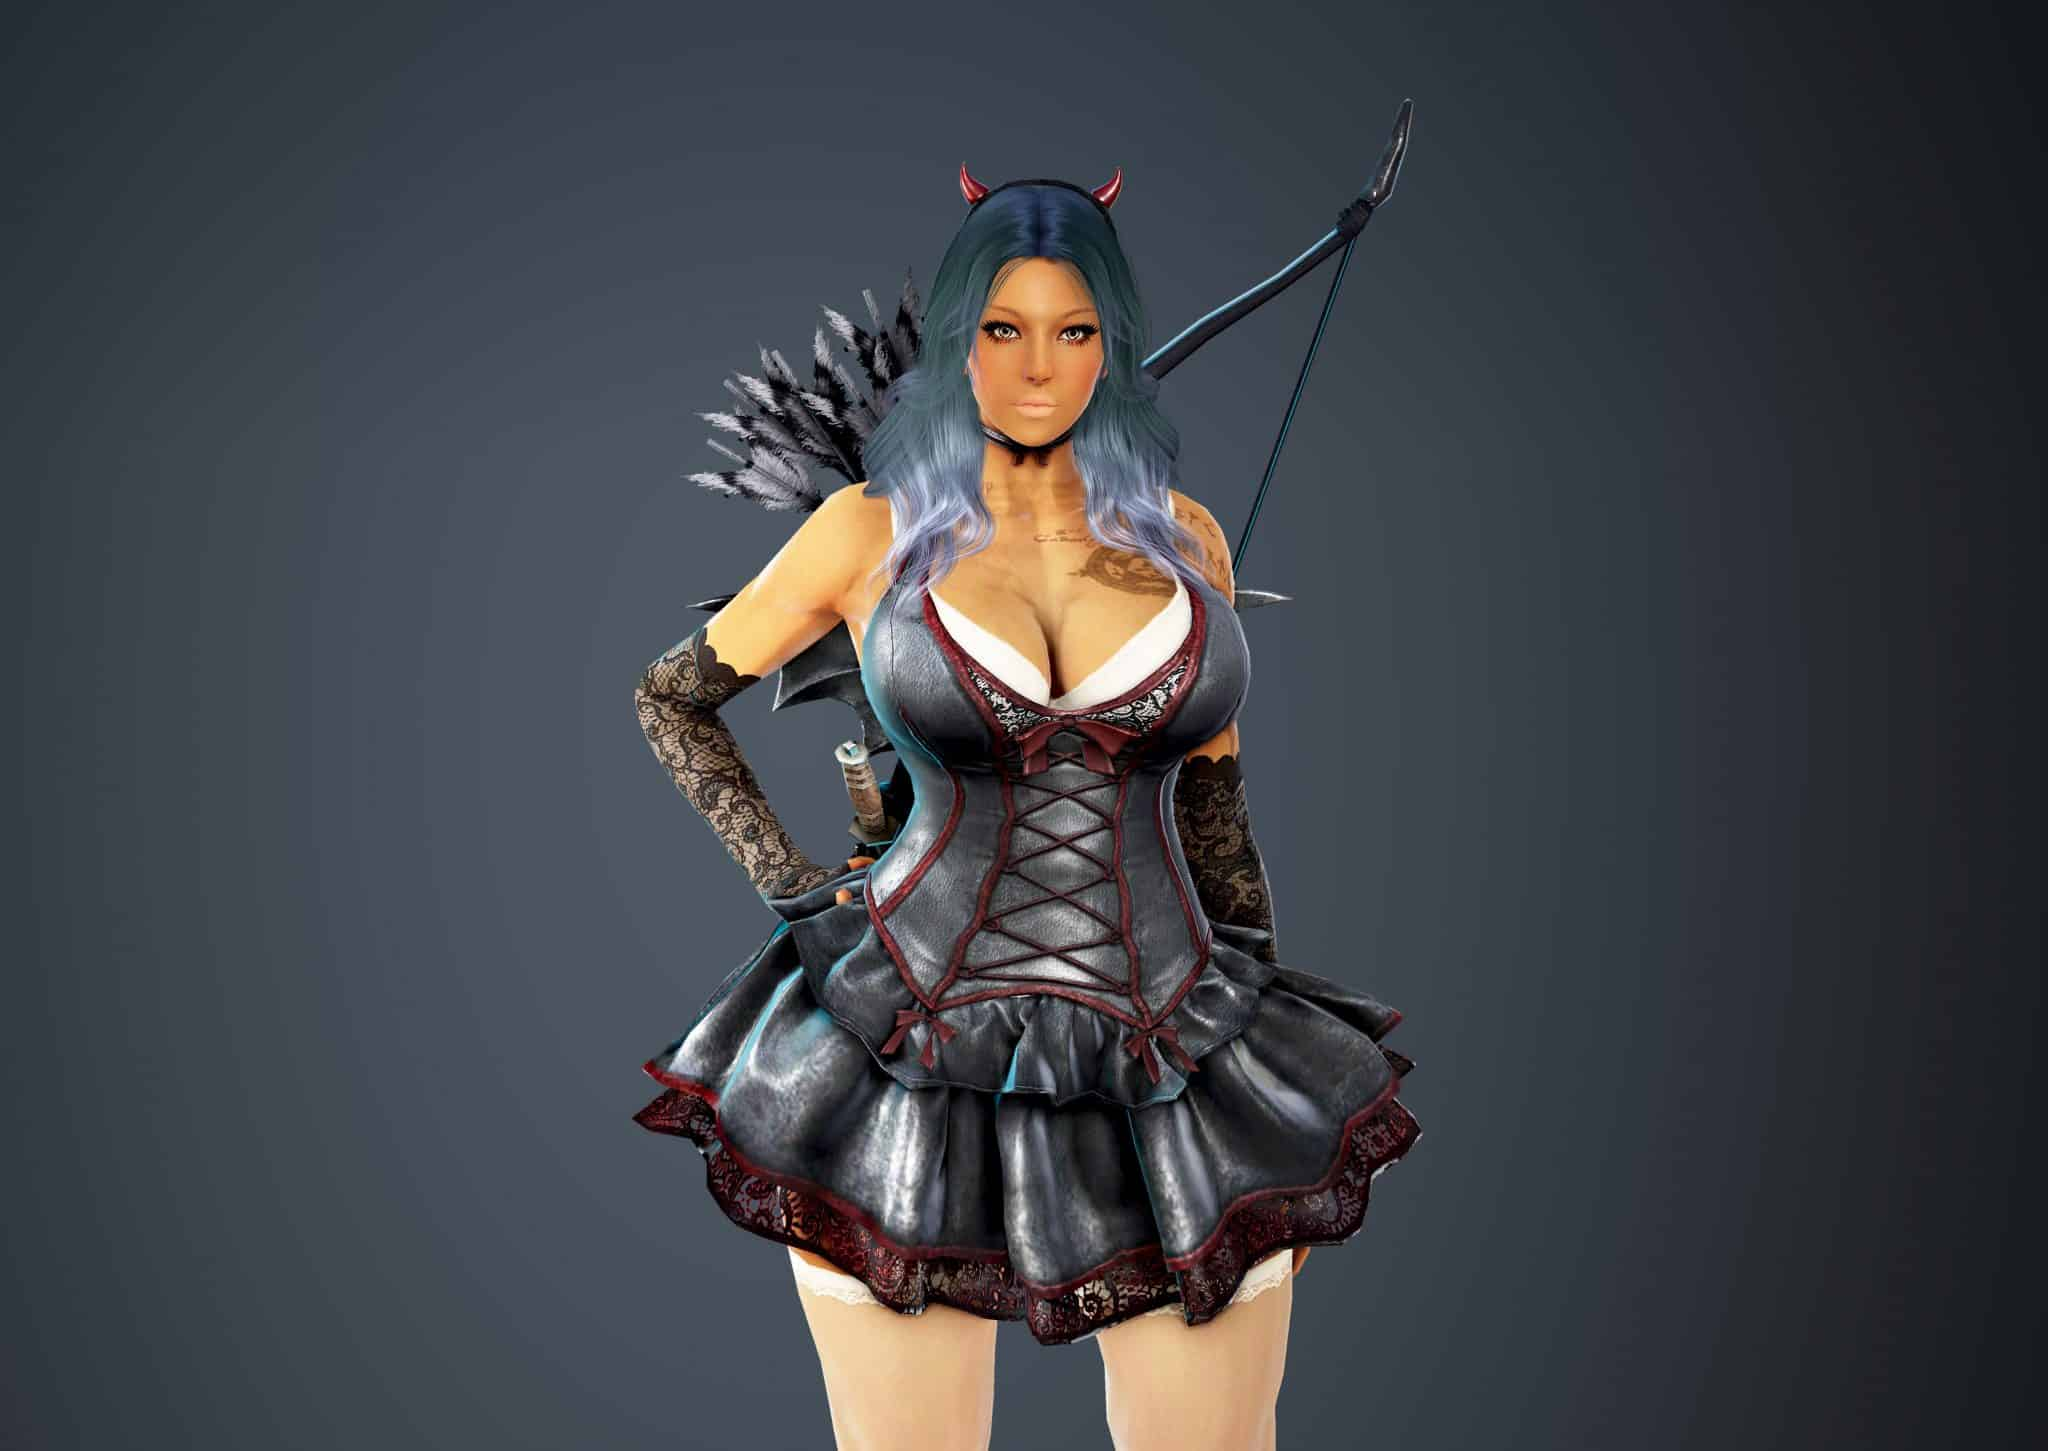 Ranger Bloody Dress, Bloody Outfit Set, Halloween 2018, Black Desert Online